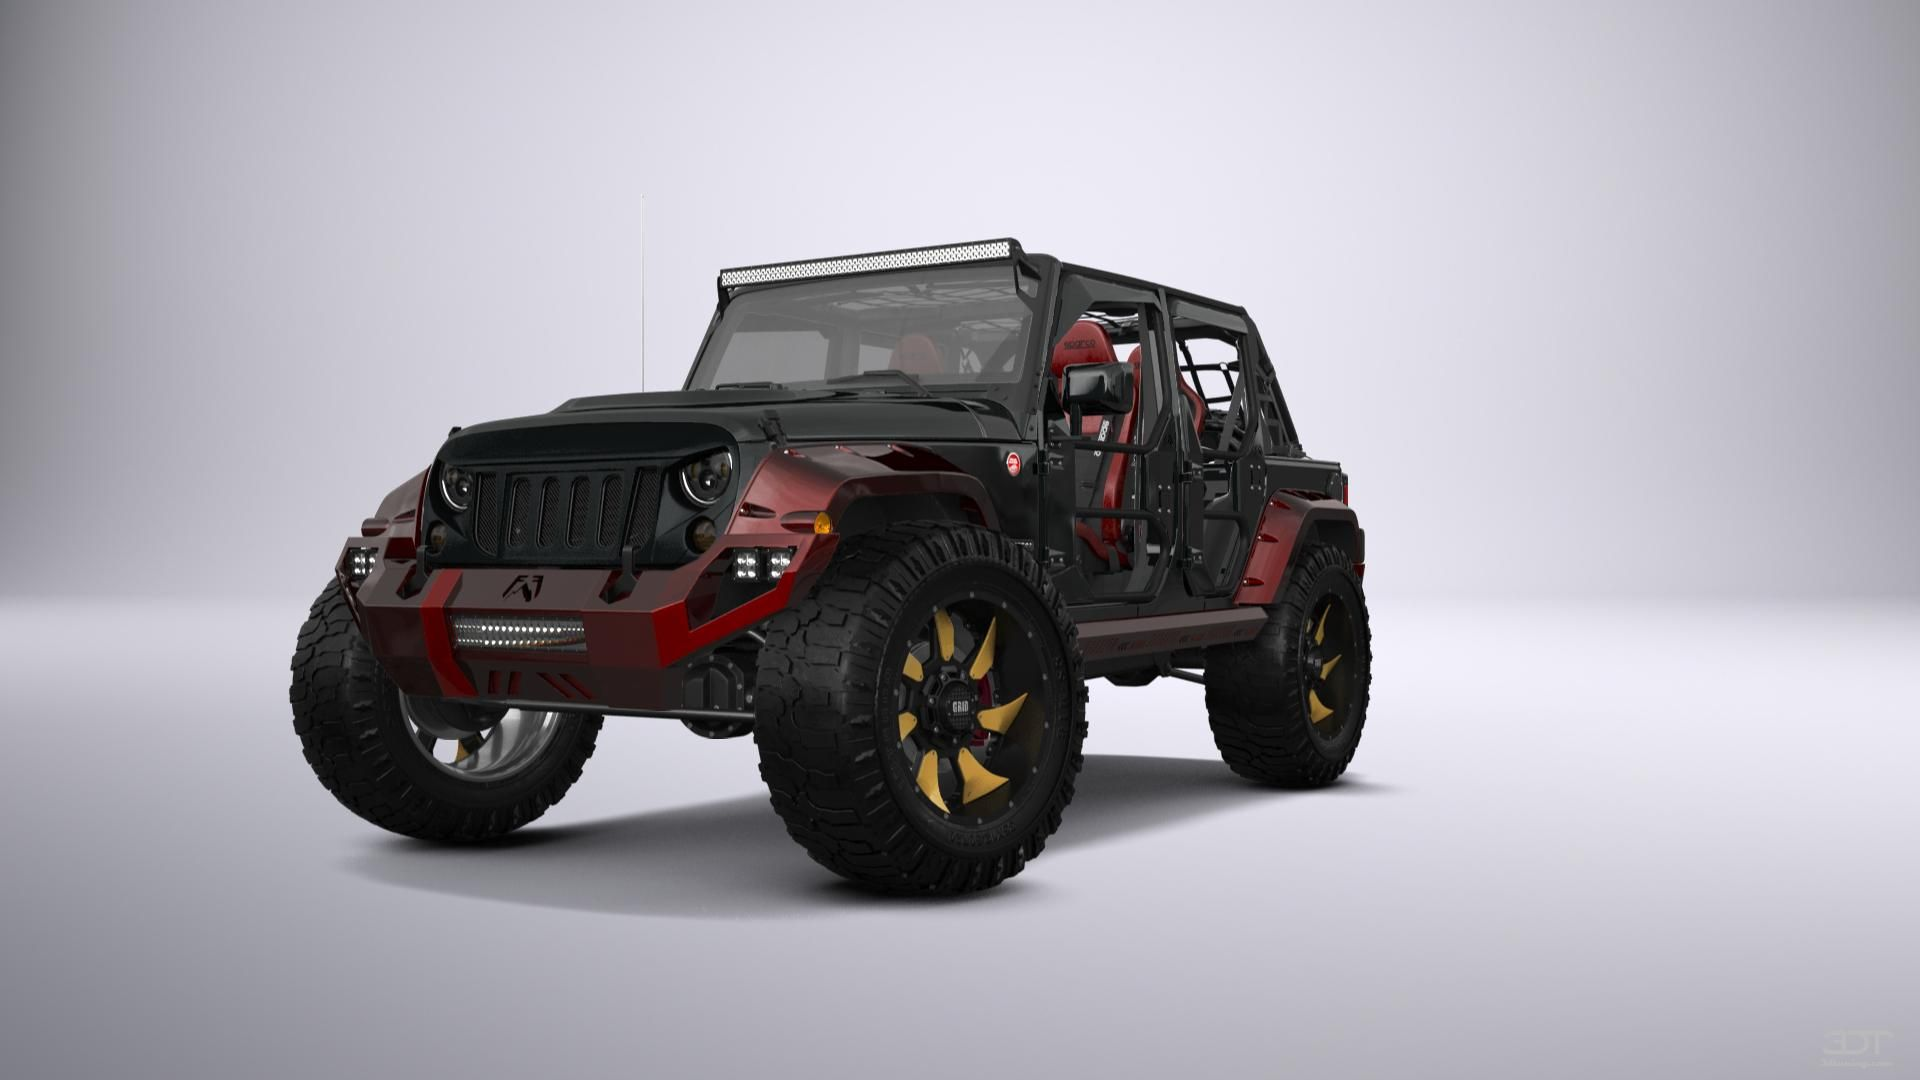 Checkout My Tuning Jeep Wranglerunlimitedrubiconrecon 2017 At 3dtuning 3dtuning Tuning Jeep Wrangler Unlimited Jeep Jeep Wrangler